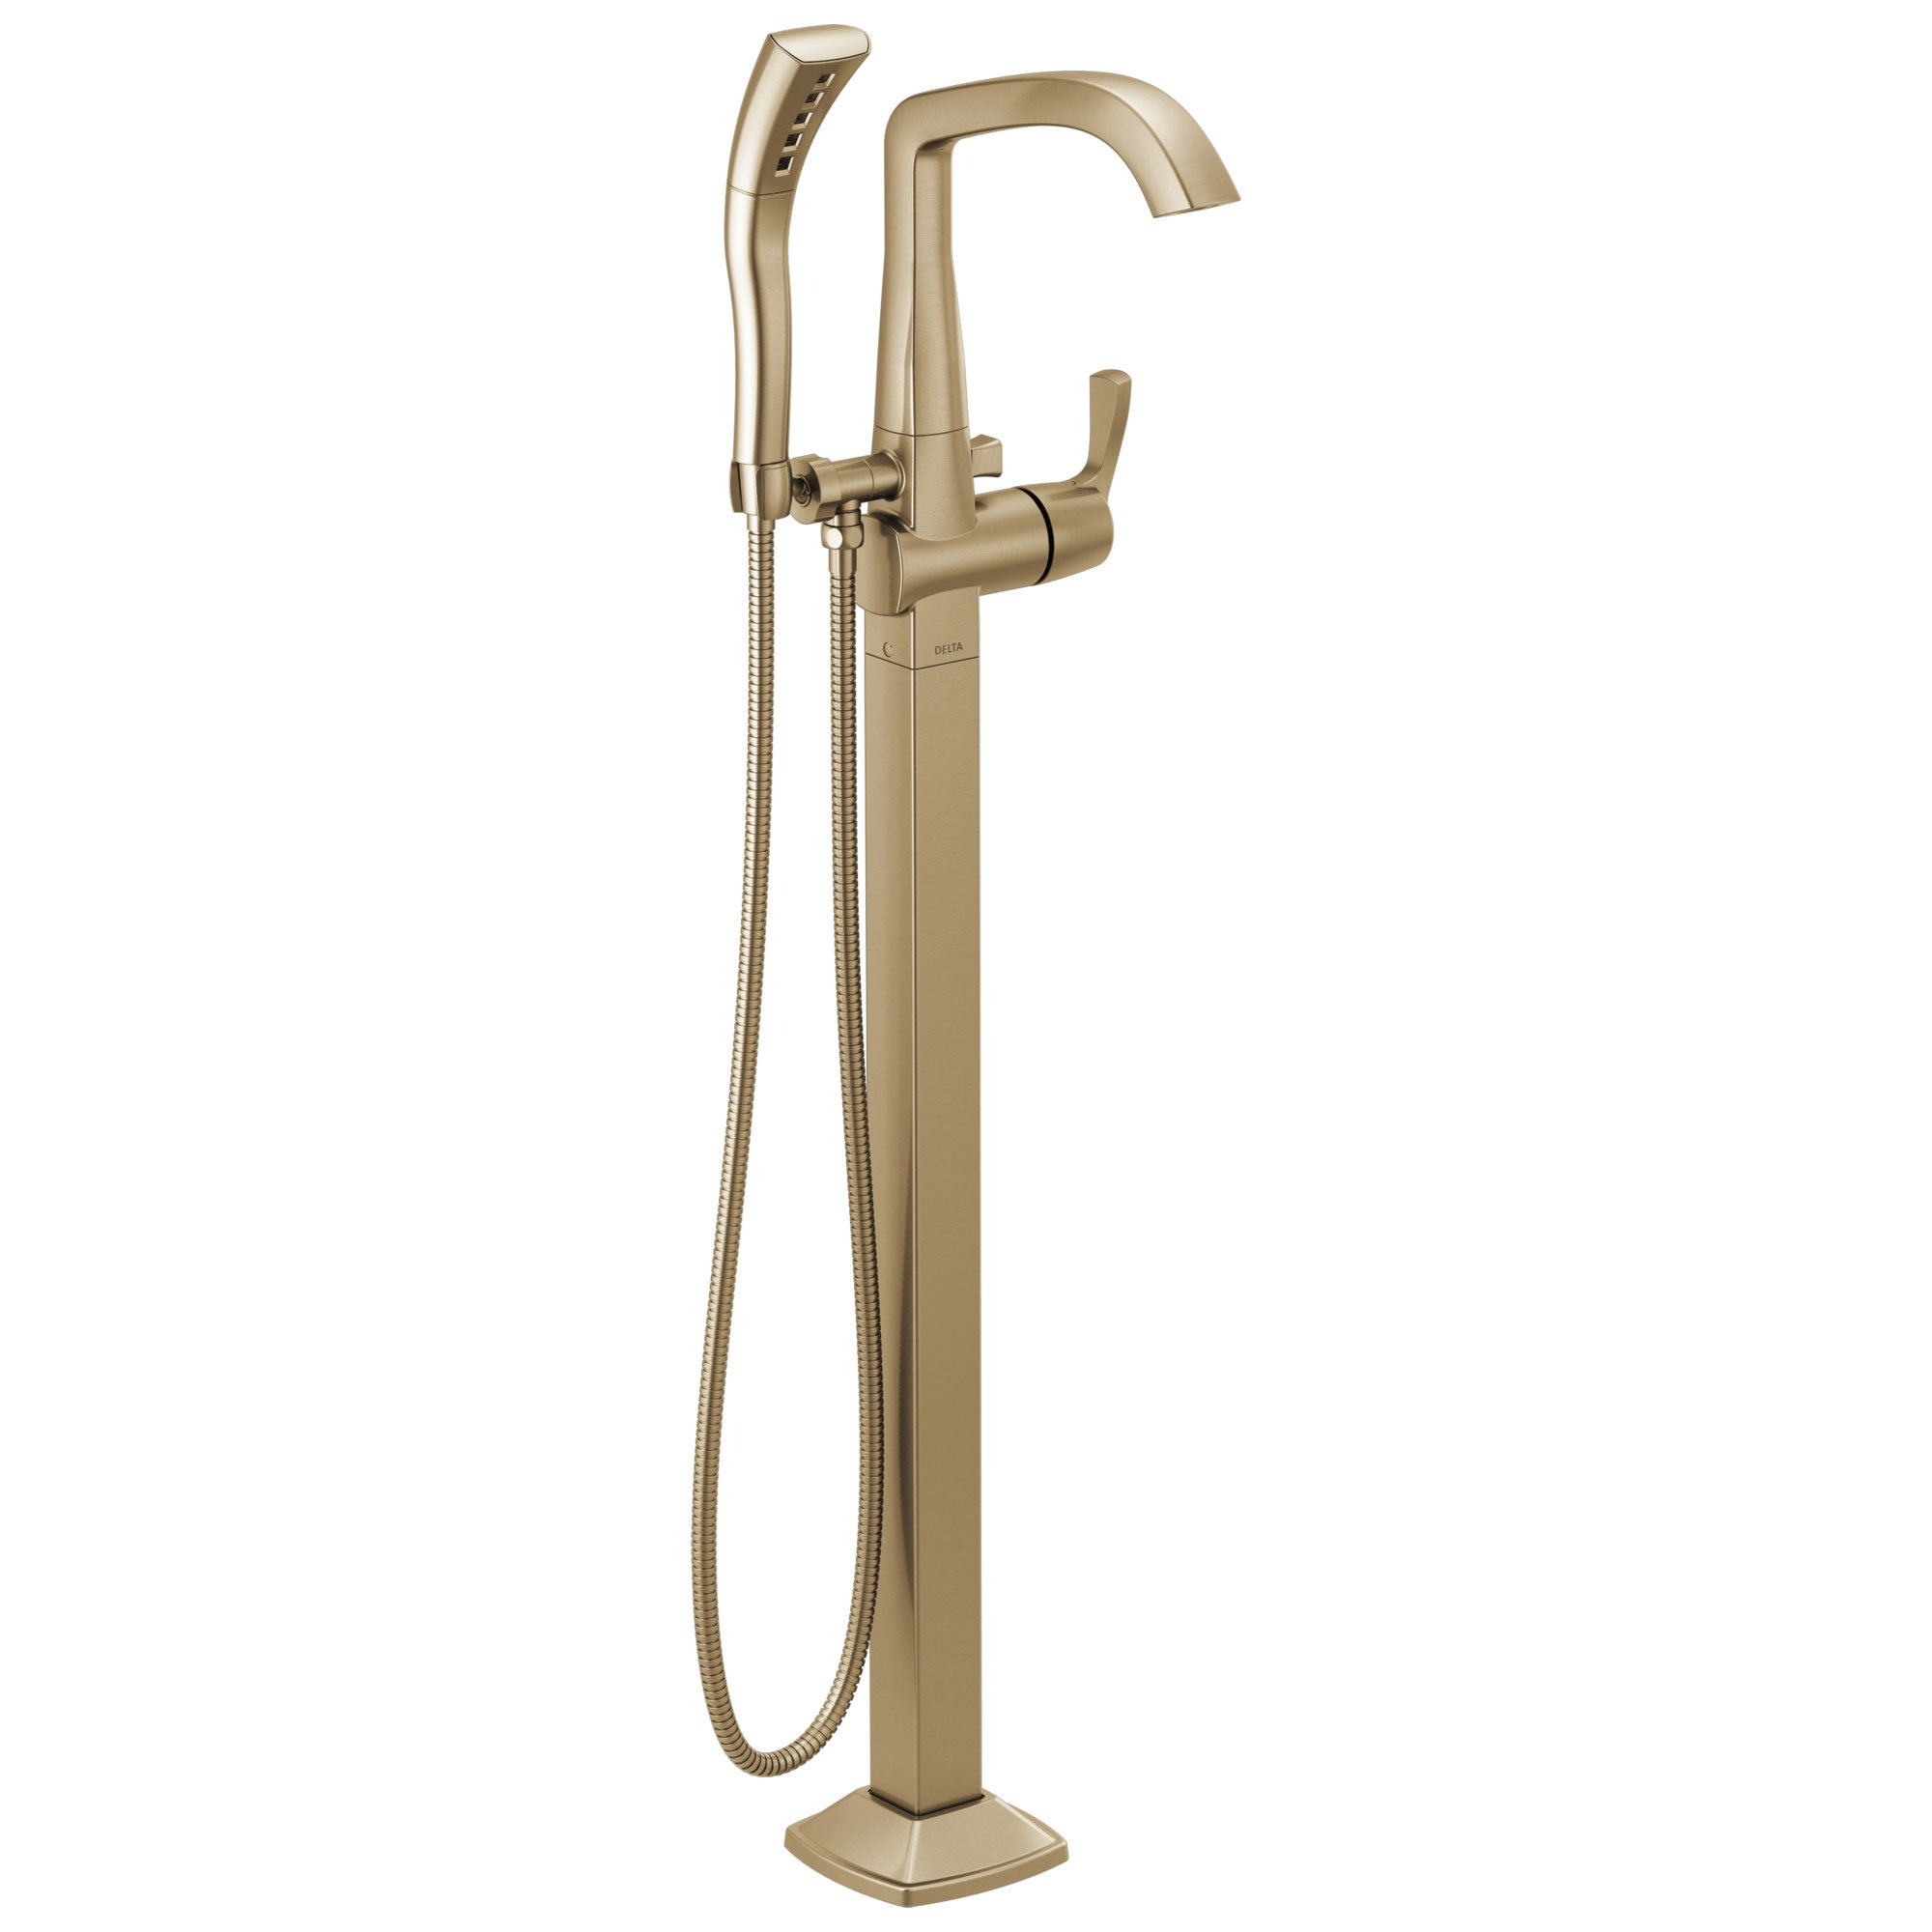 Delta Stryke Champagne Bronze Finish Single Handle Floor Mount Tub Filler Faucet with Hand Sprayer Trim Kit (Requires Valve) DT4776CZFL